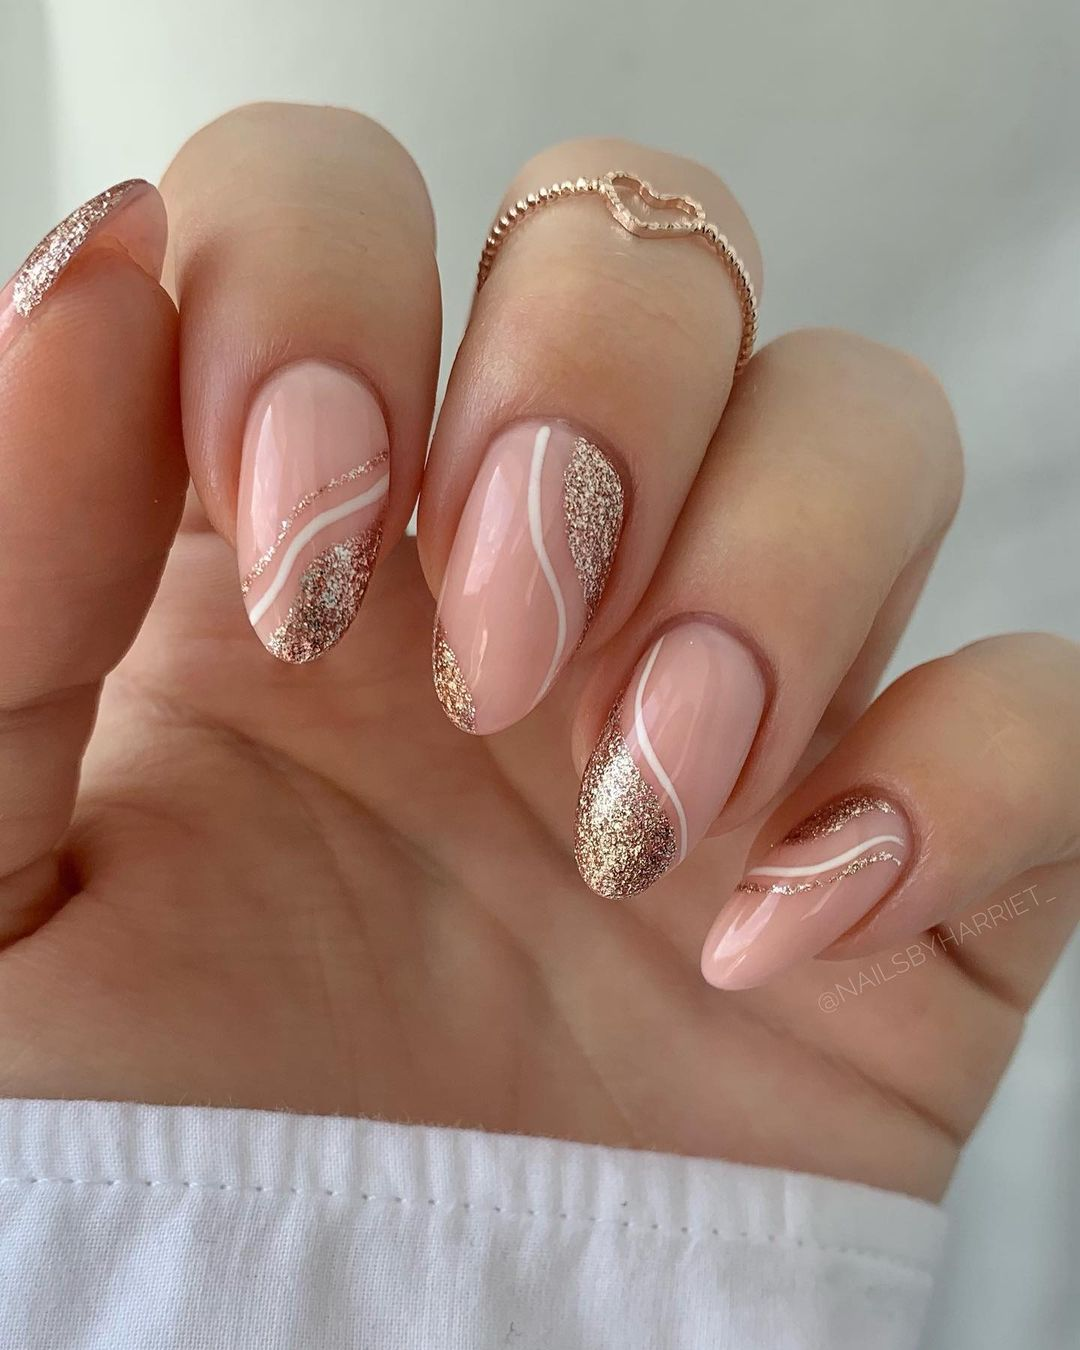 Rose gold nails with glitter